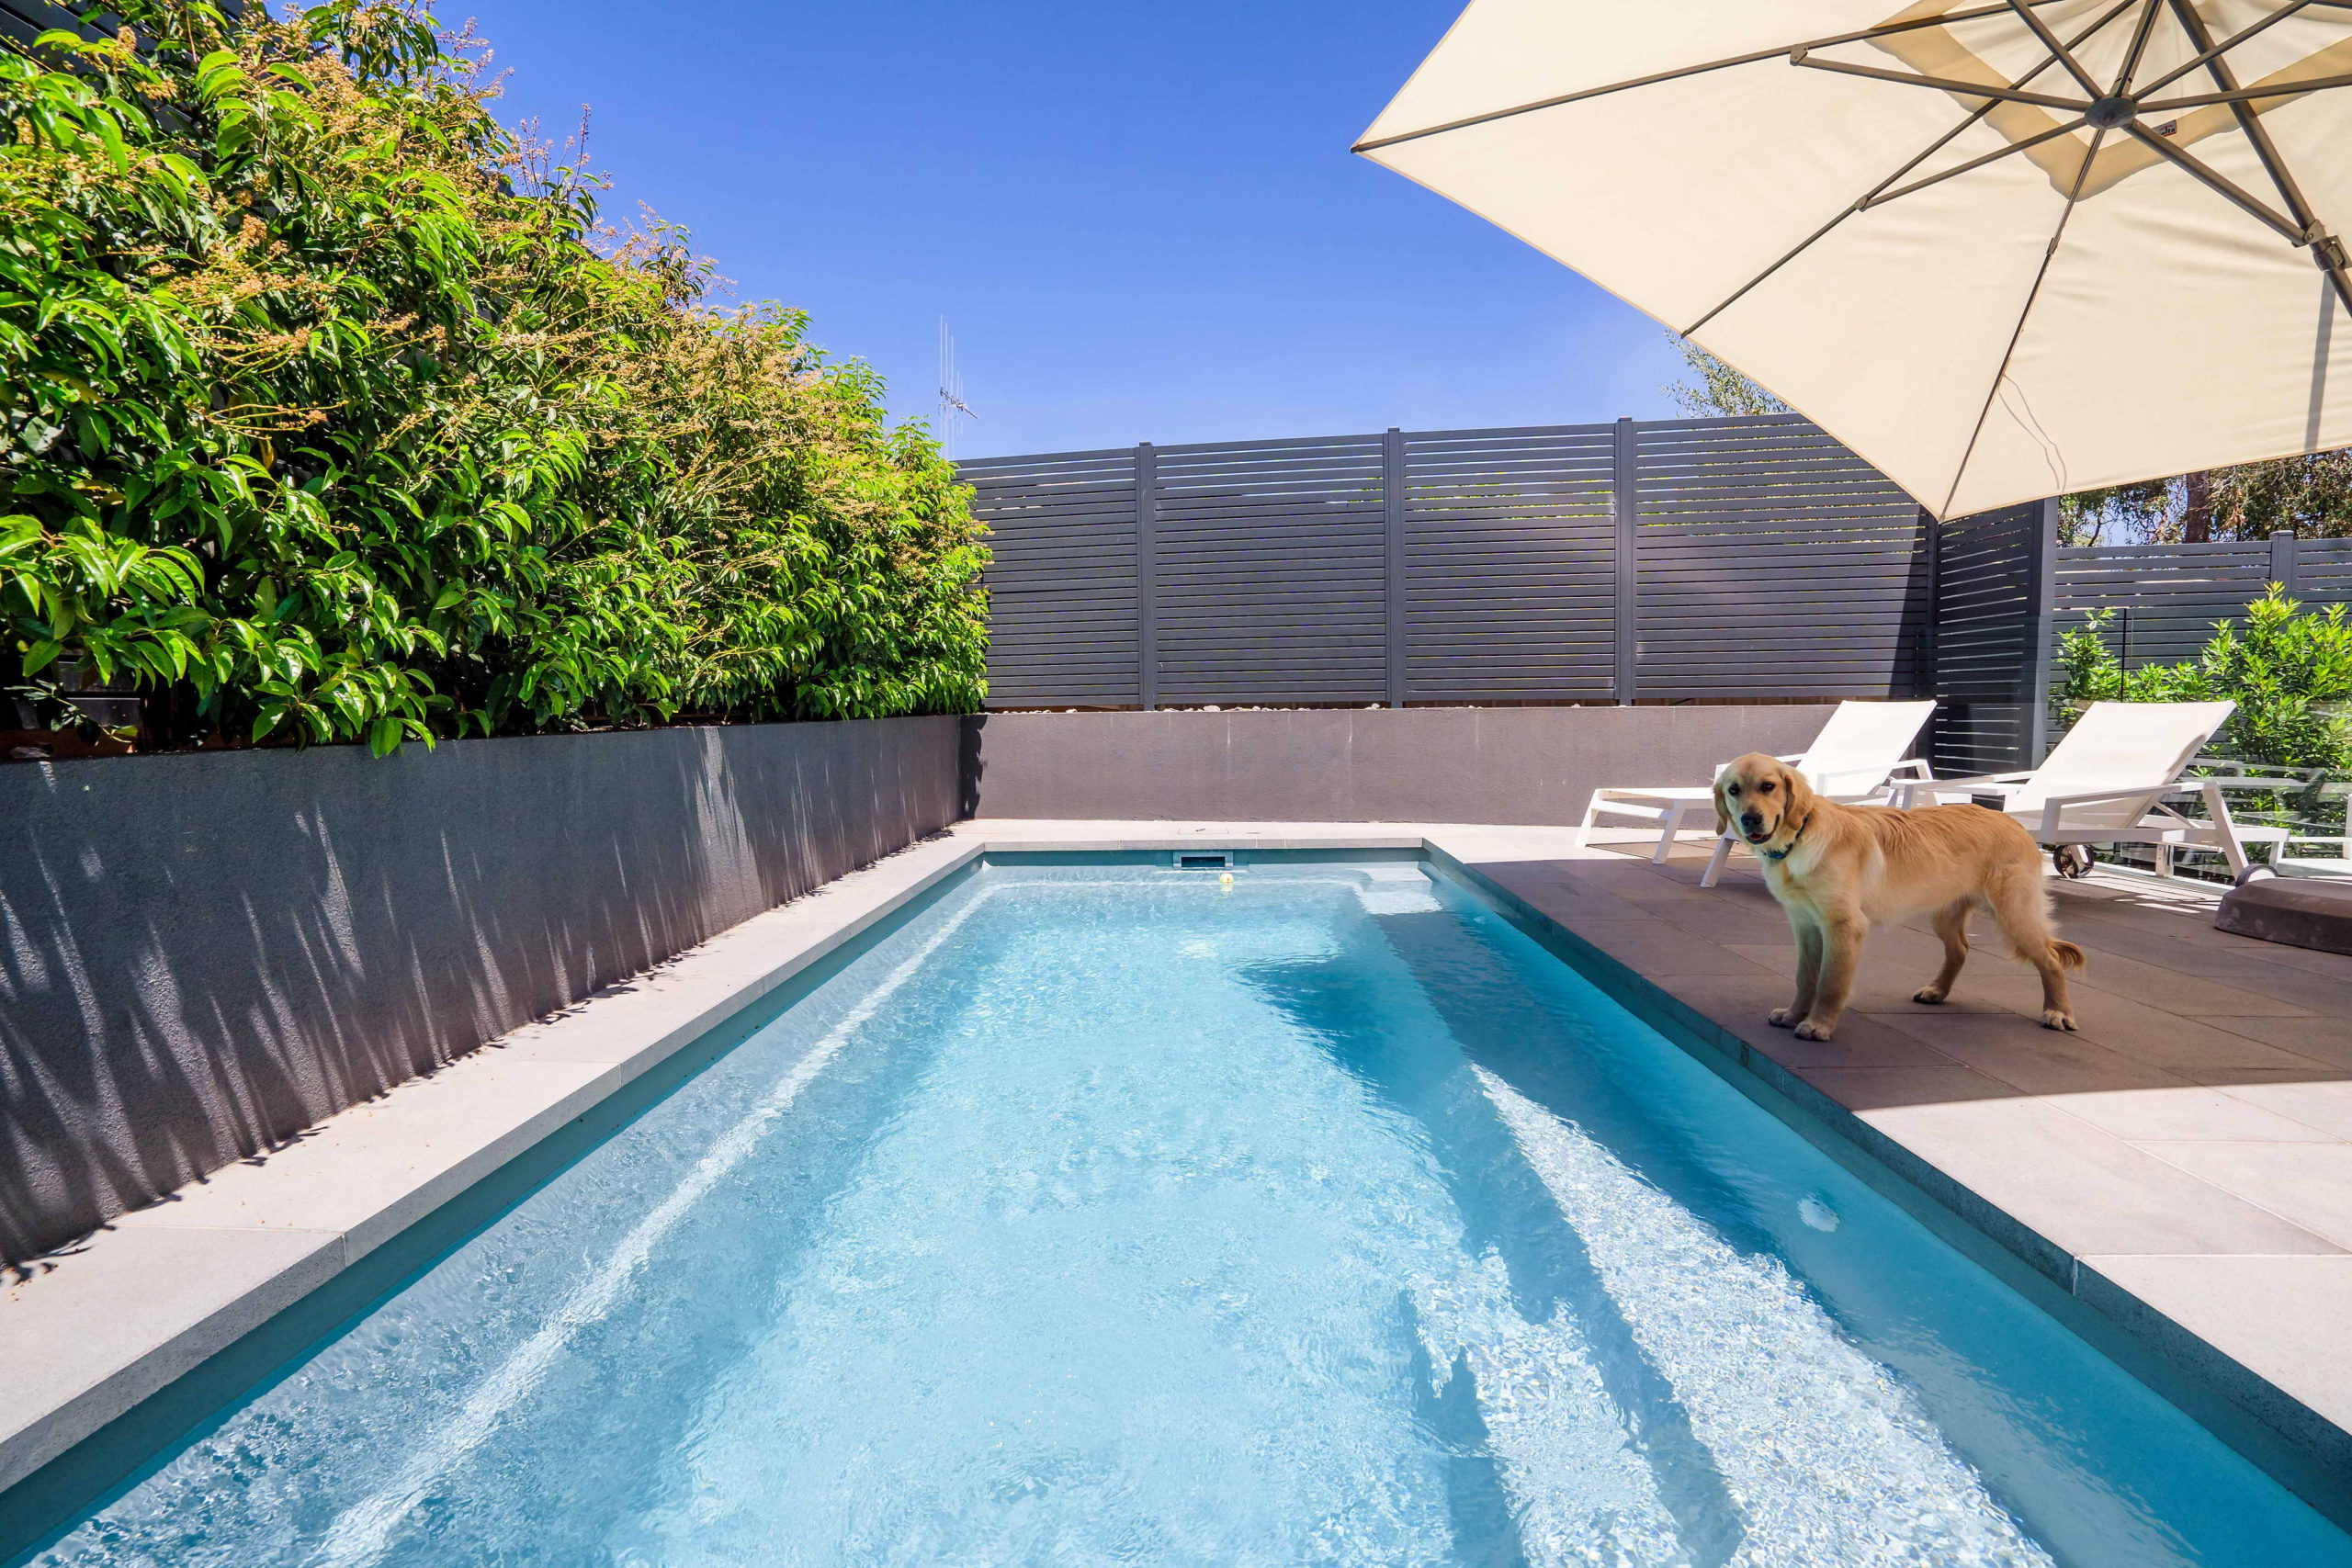 Leisure Pools' Harmony 6 in Silver Grey with a Golden Retriever nearby